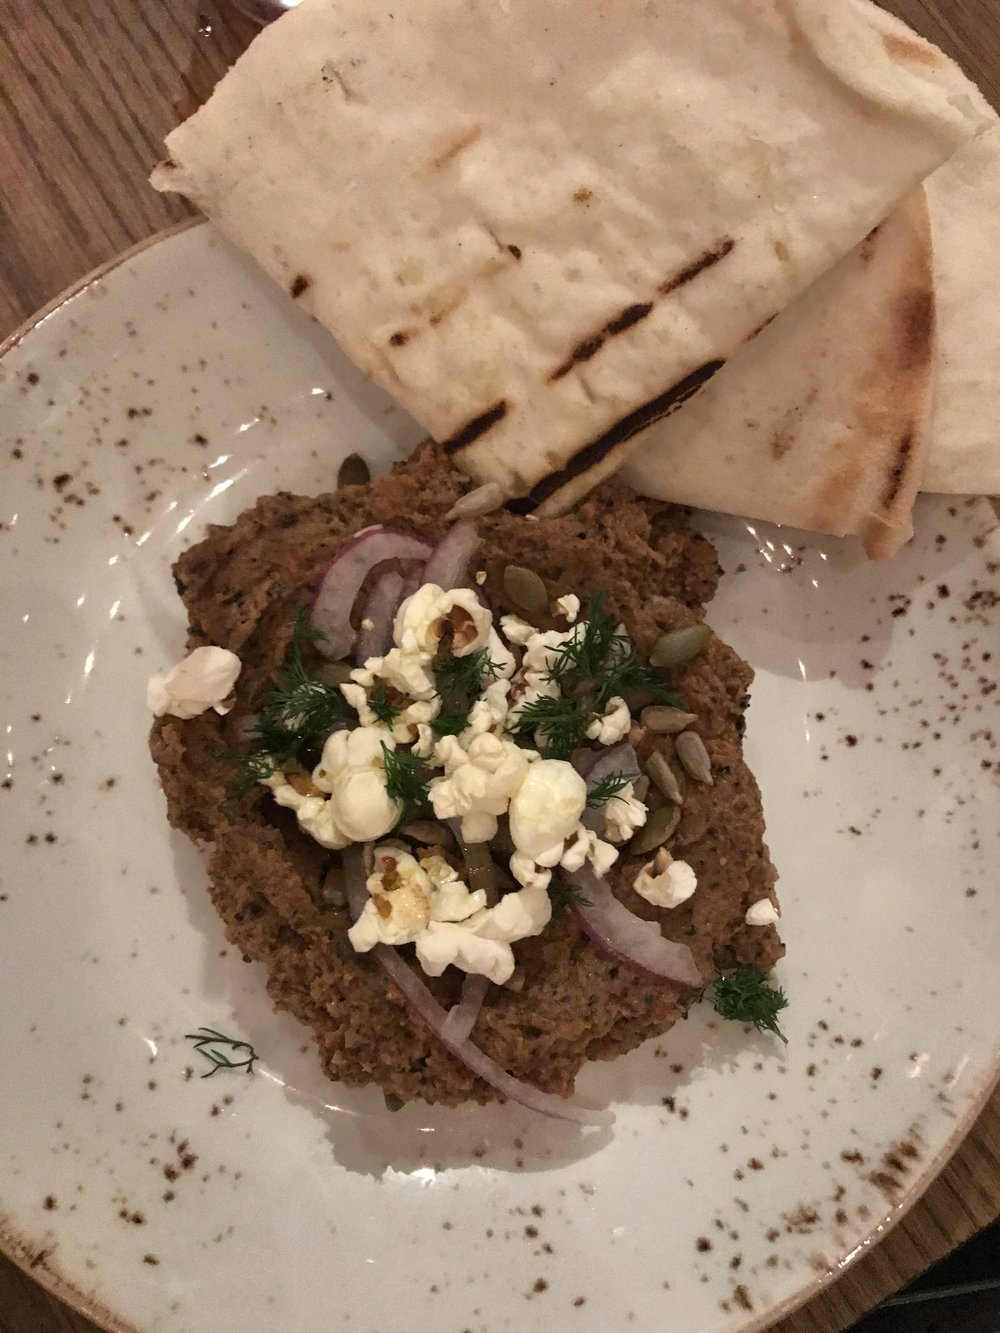 The cauliflower hummus at The Little Beet Table is served with gluten free pita and is topped with red onion, dill, popped sorghum, sunflower seeds and pumpkin seeds for added crunch.